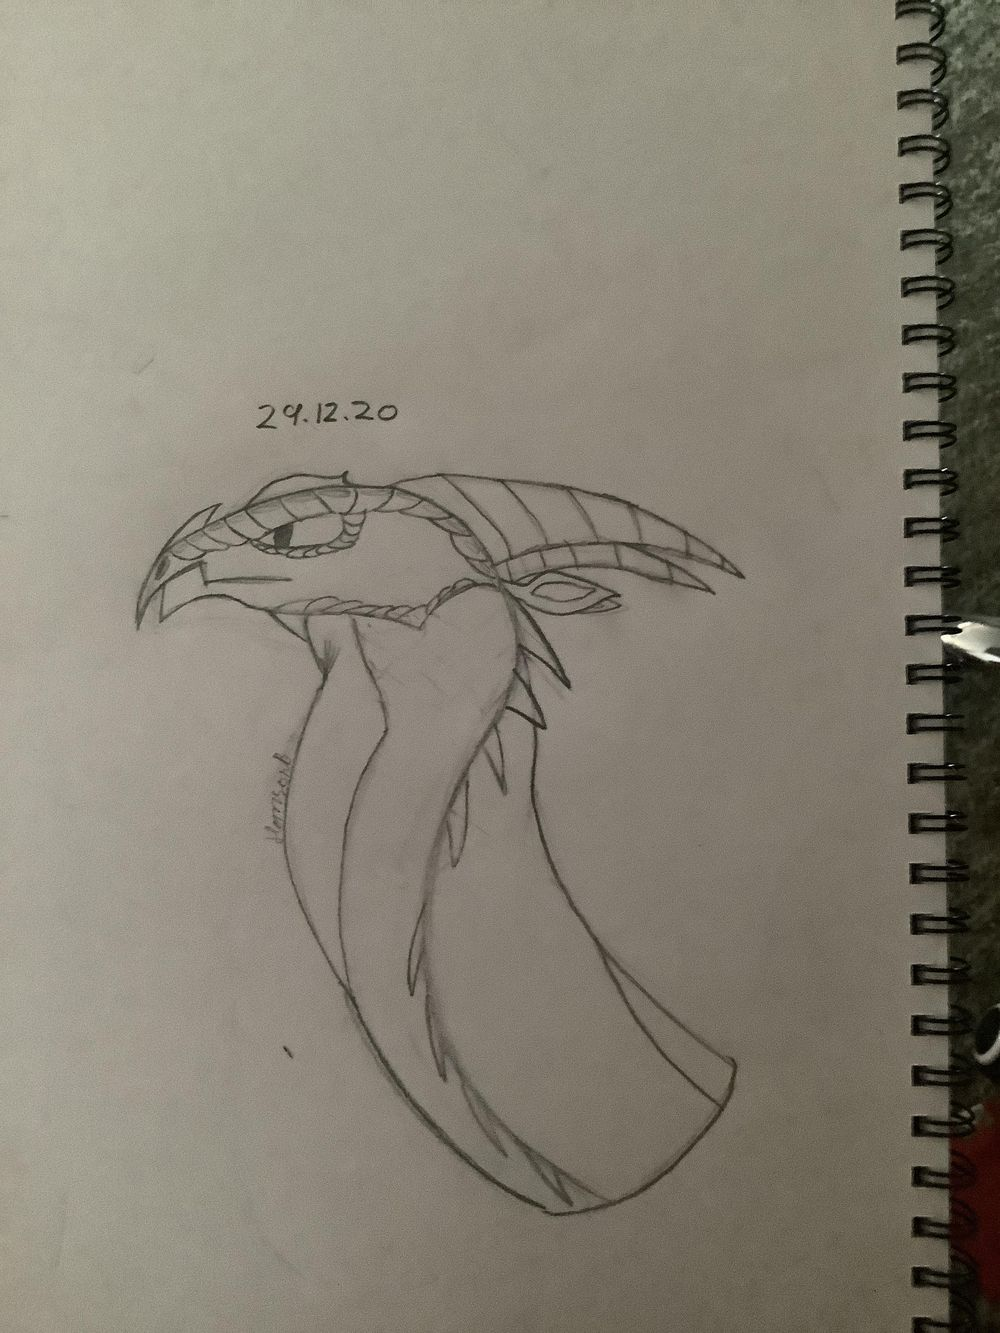 Razor Wing - image 1 - student project